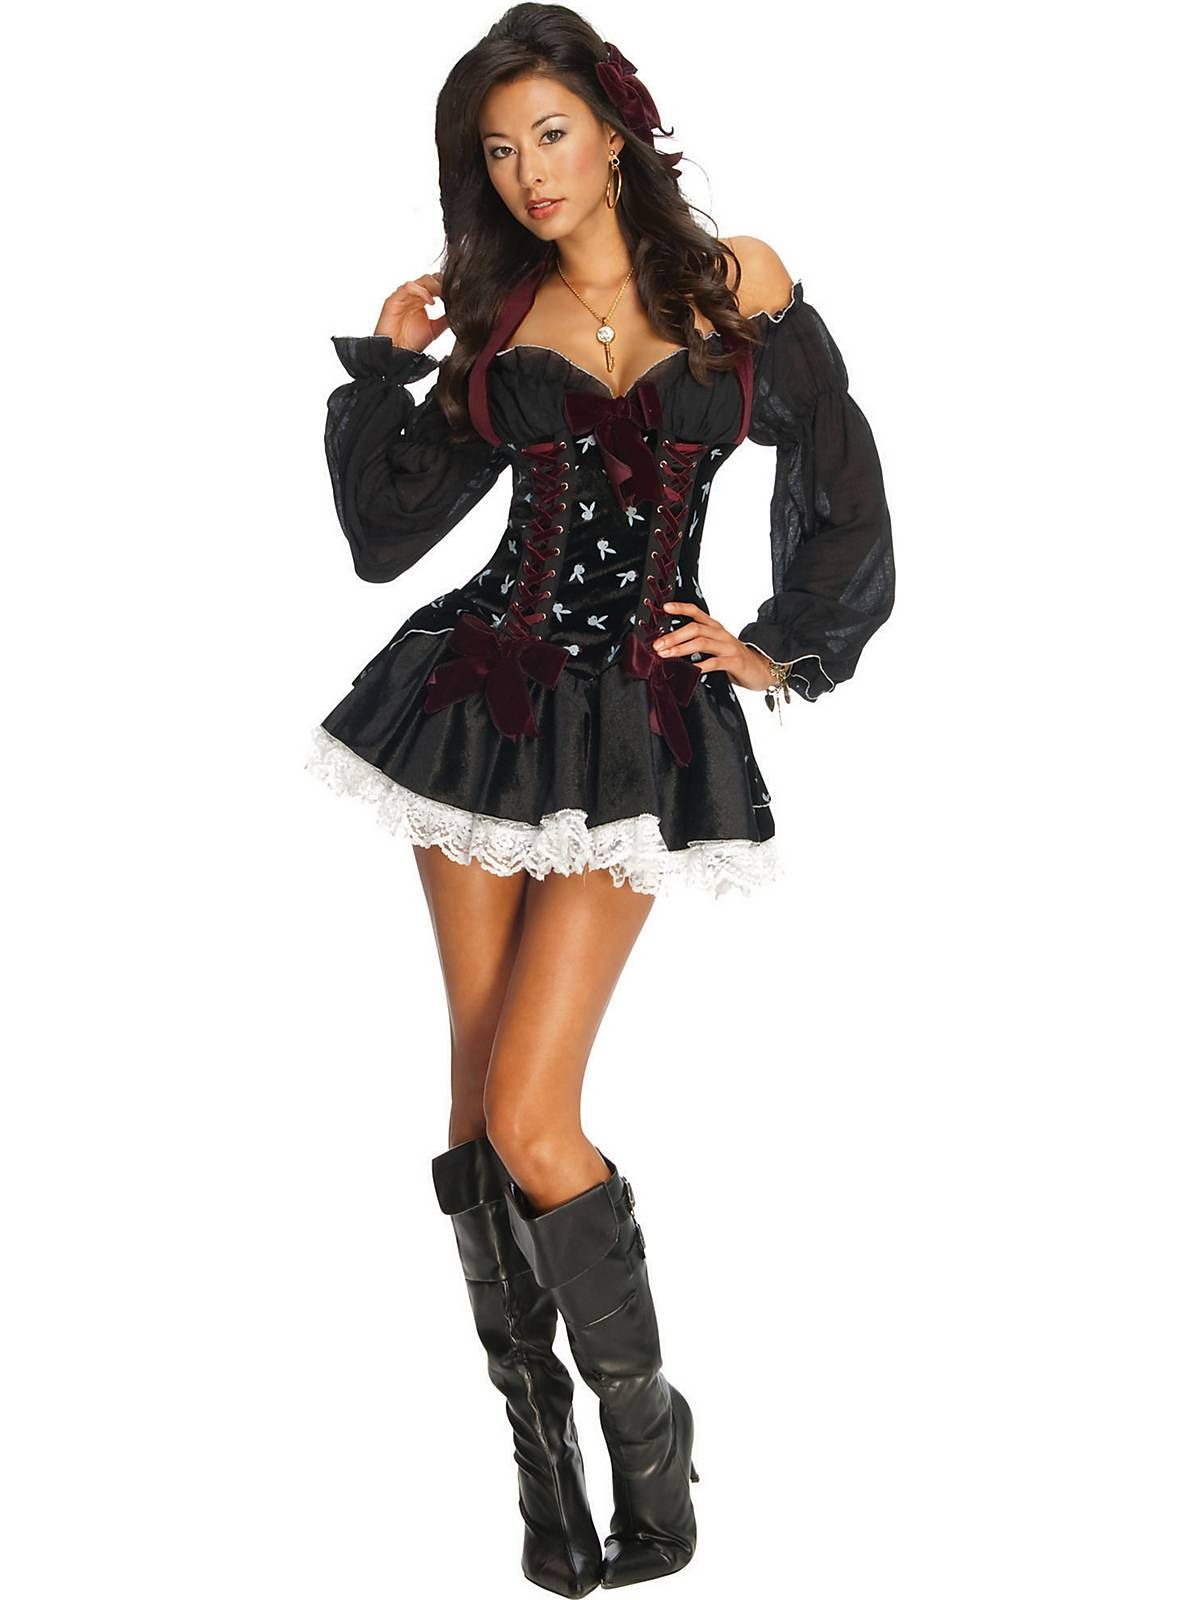 Playboy Sexy Swashbuckler Pirate Adult Costume | Wholesale Pirate Costumes for Adults  sc 1 st  Pinterest : cheap pirate halloween costumes  - Germanpascual.Com